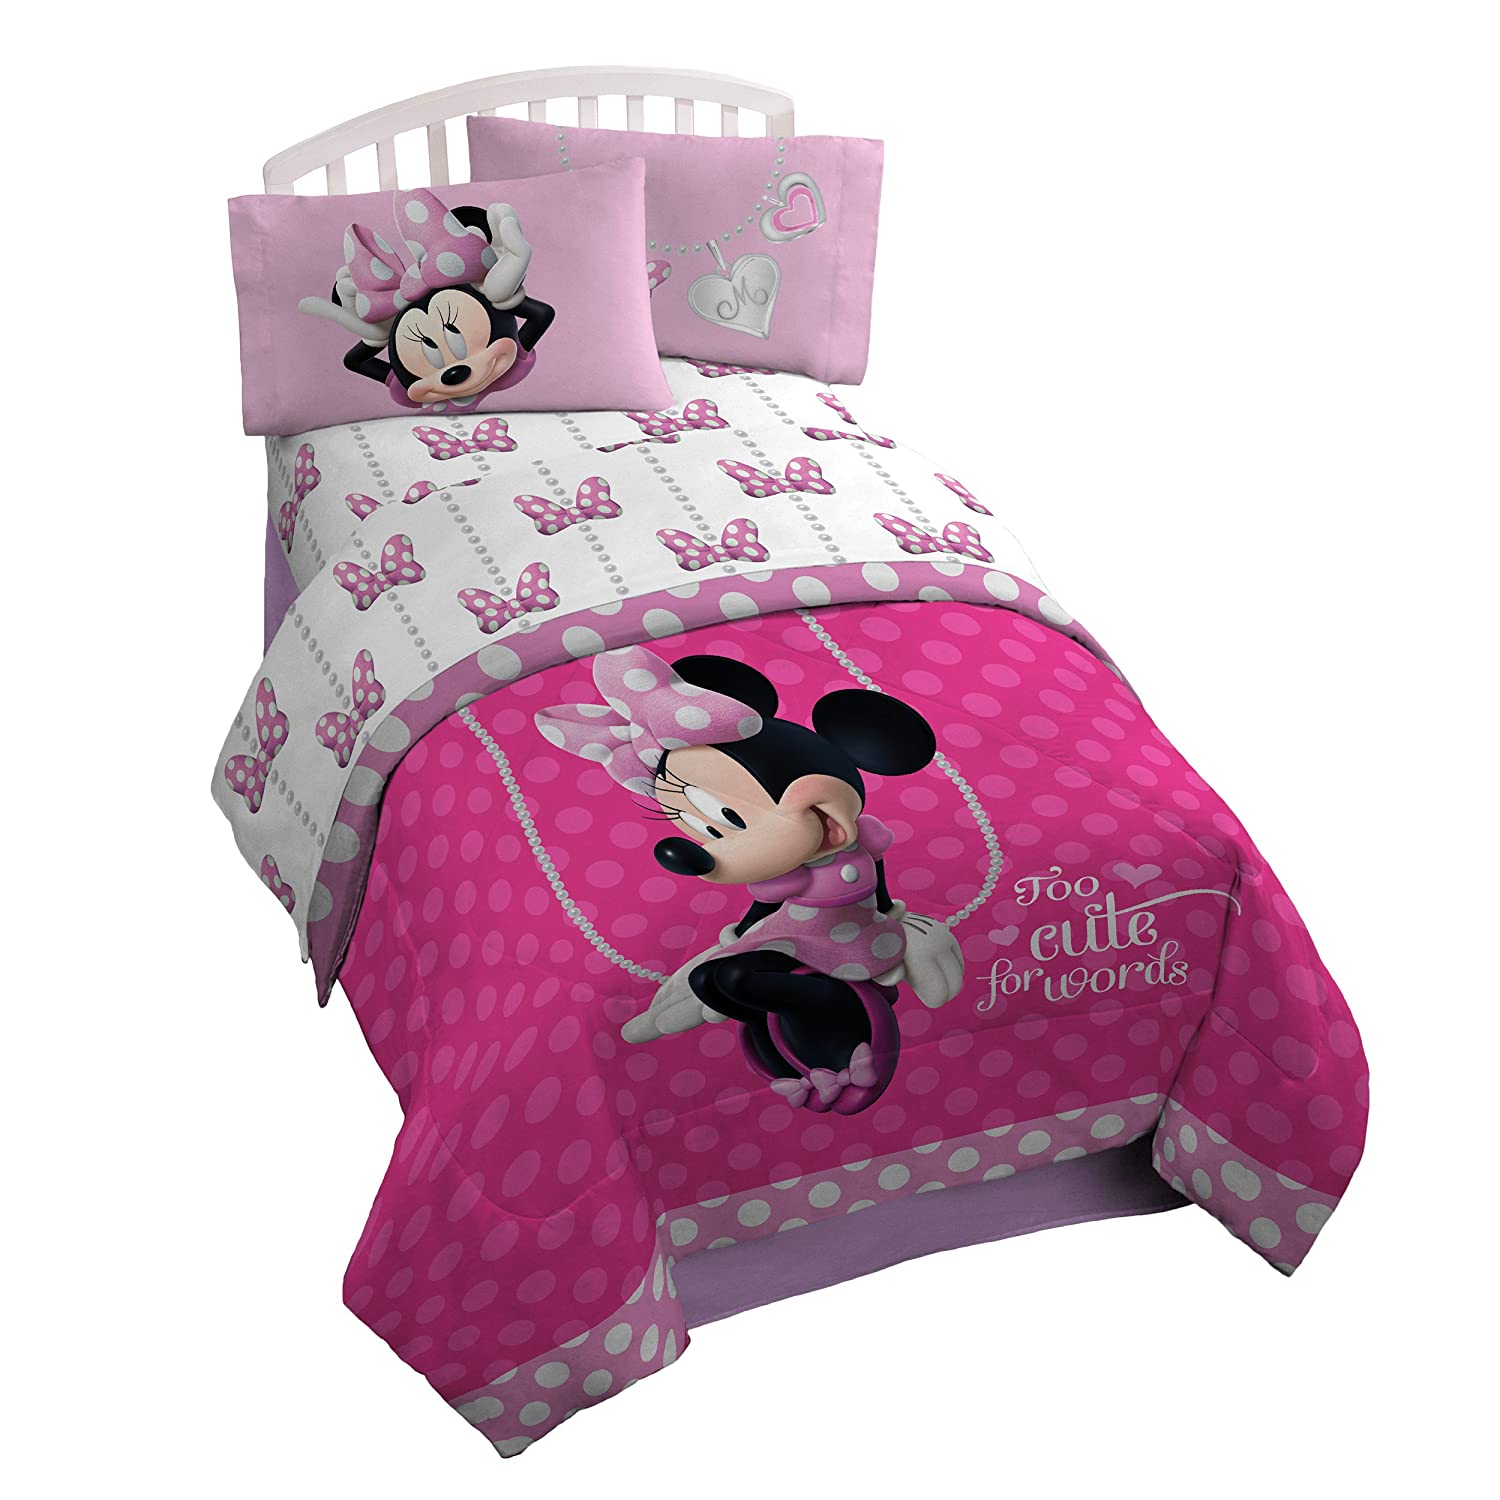 Minnie Mouse Sheet Set Twin Bed Size Girls Room Decor